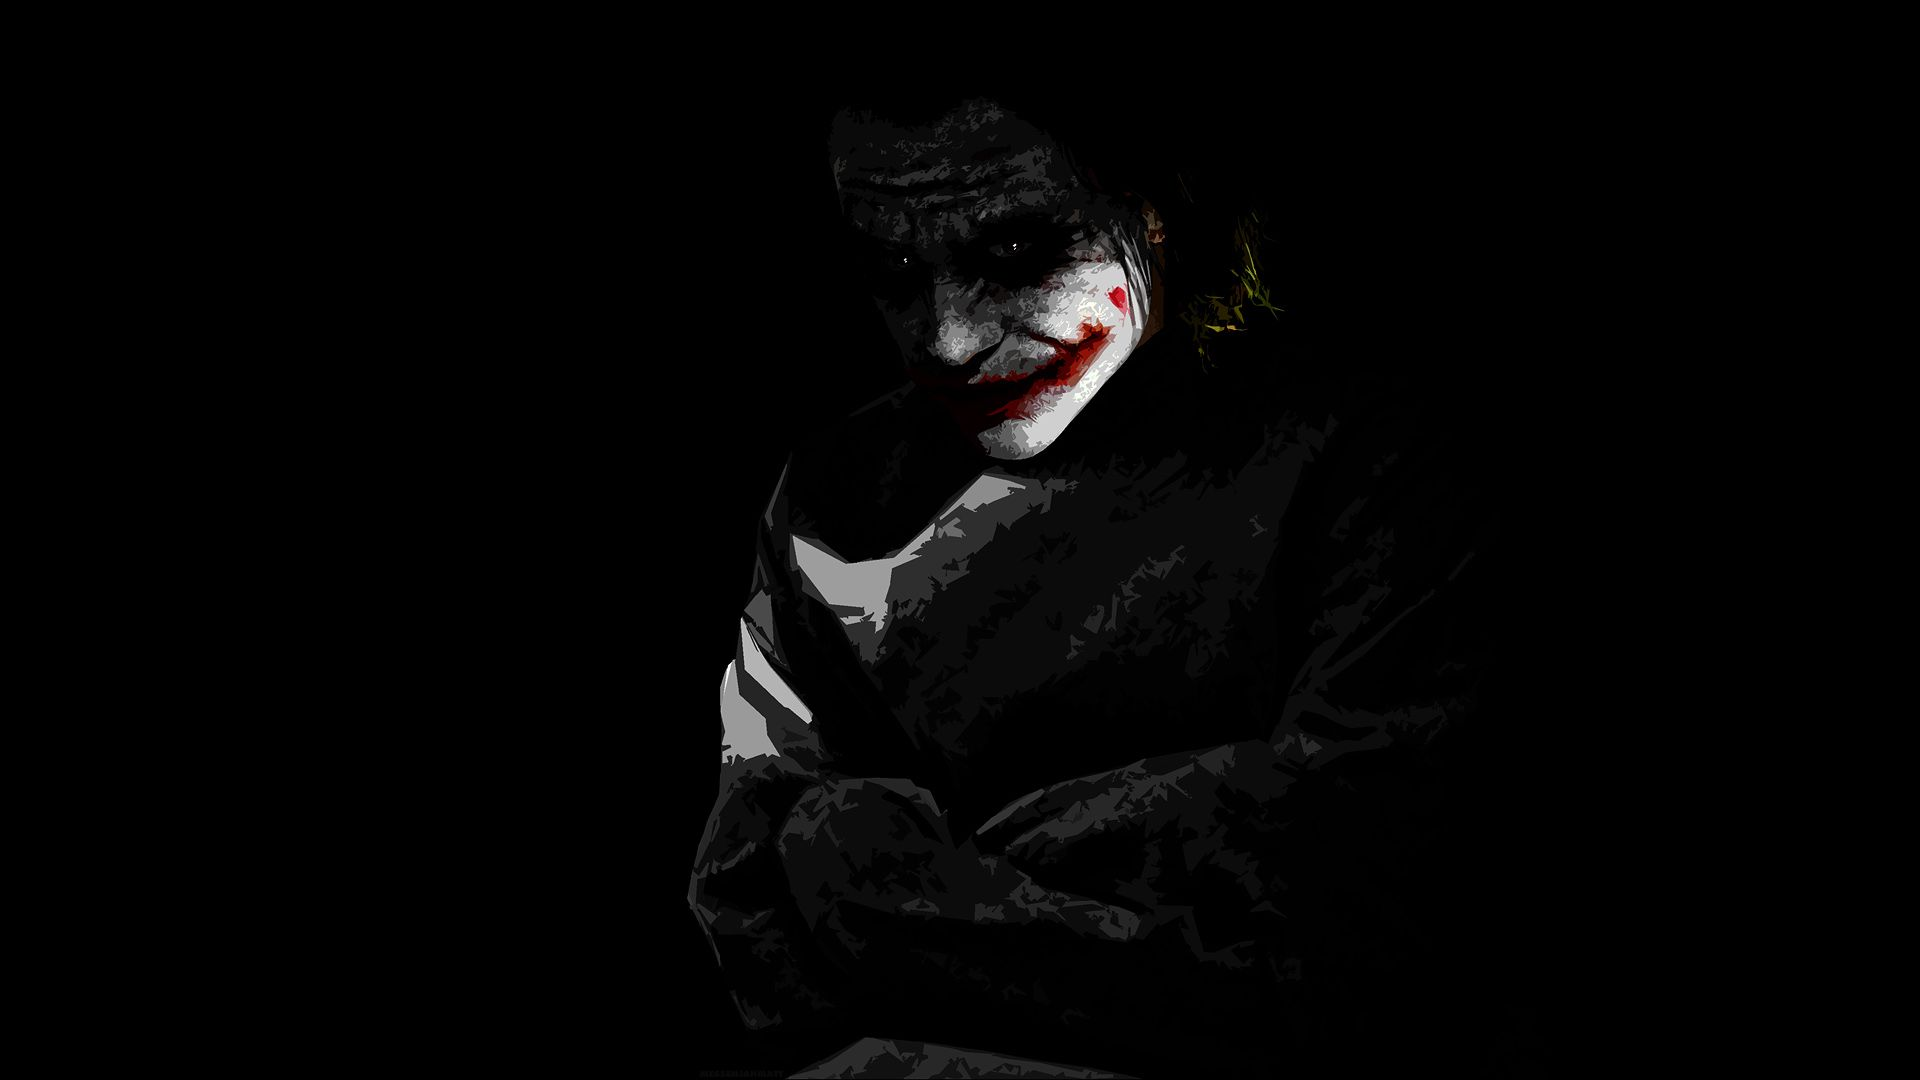 Joker hd wallpapers 10 jokerhdwallpapers joker anime wallpapers